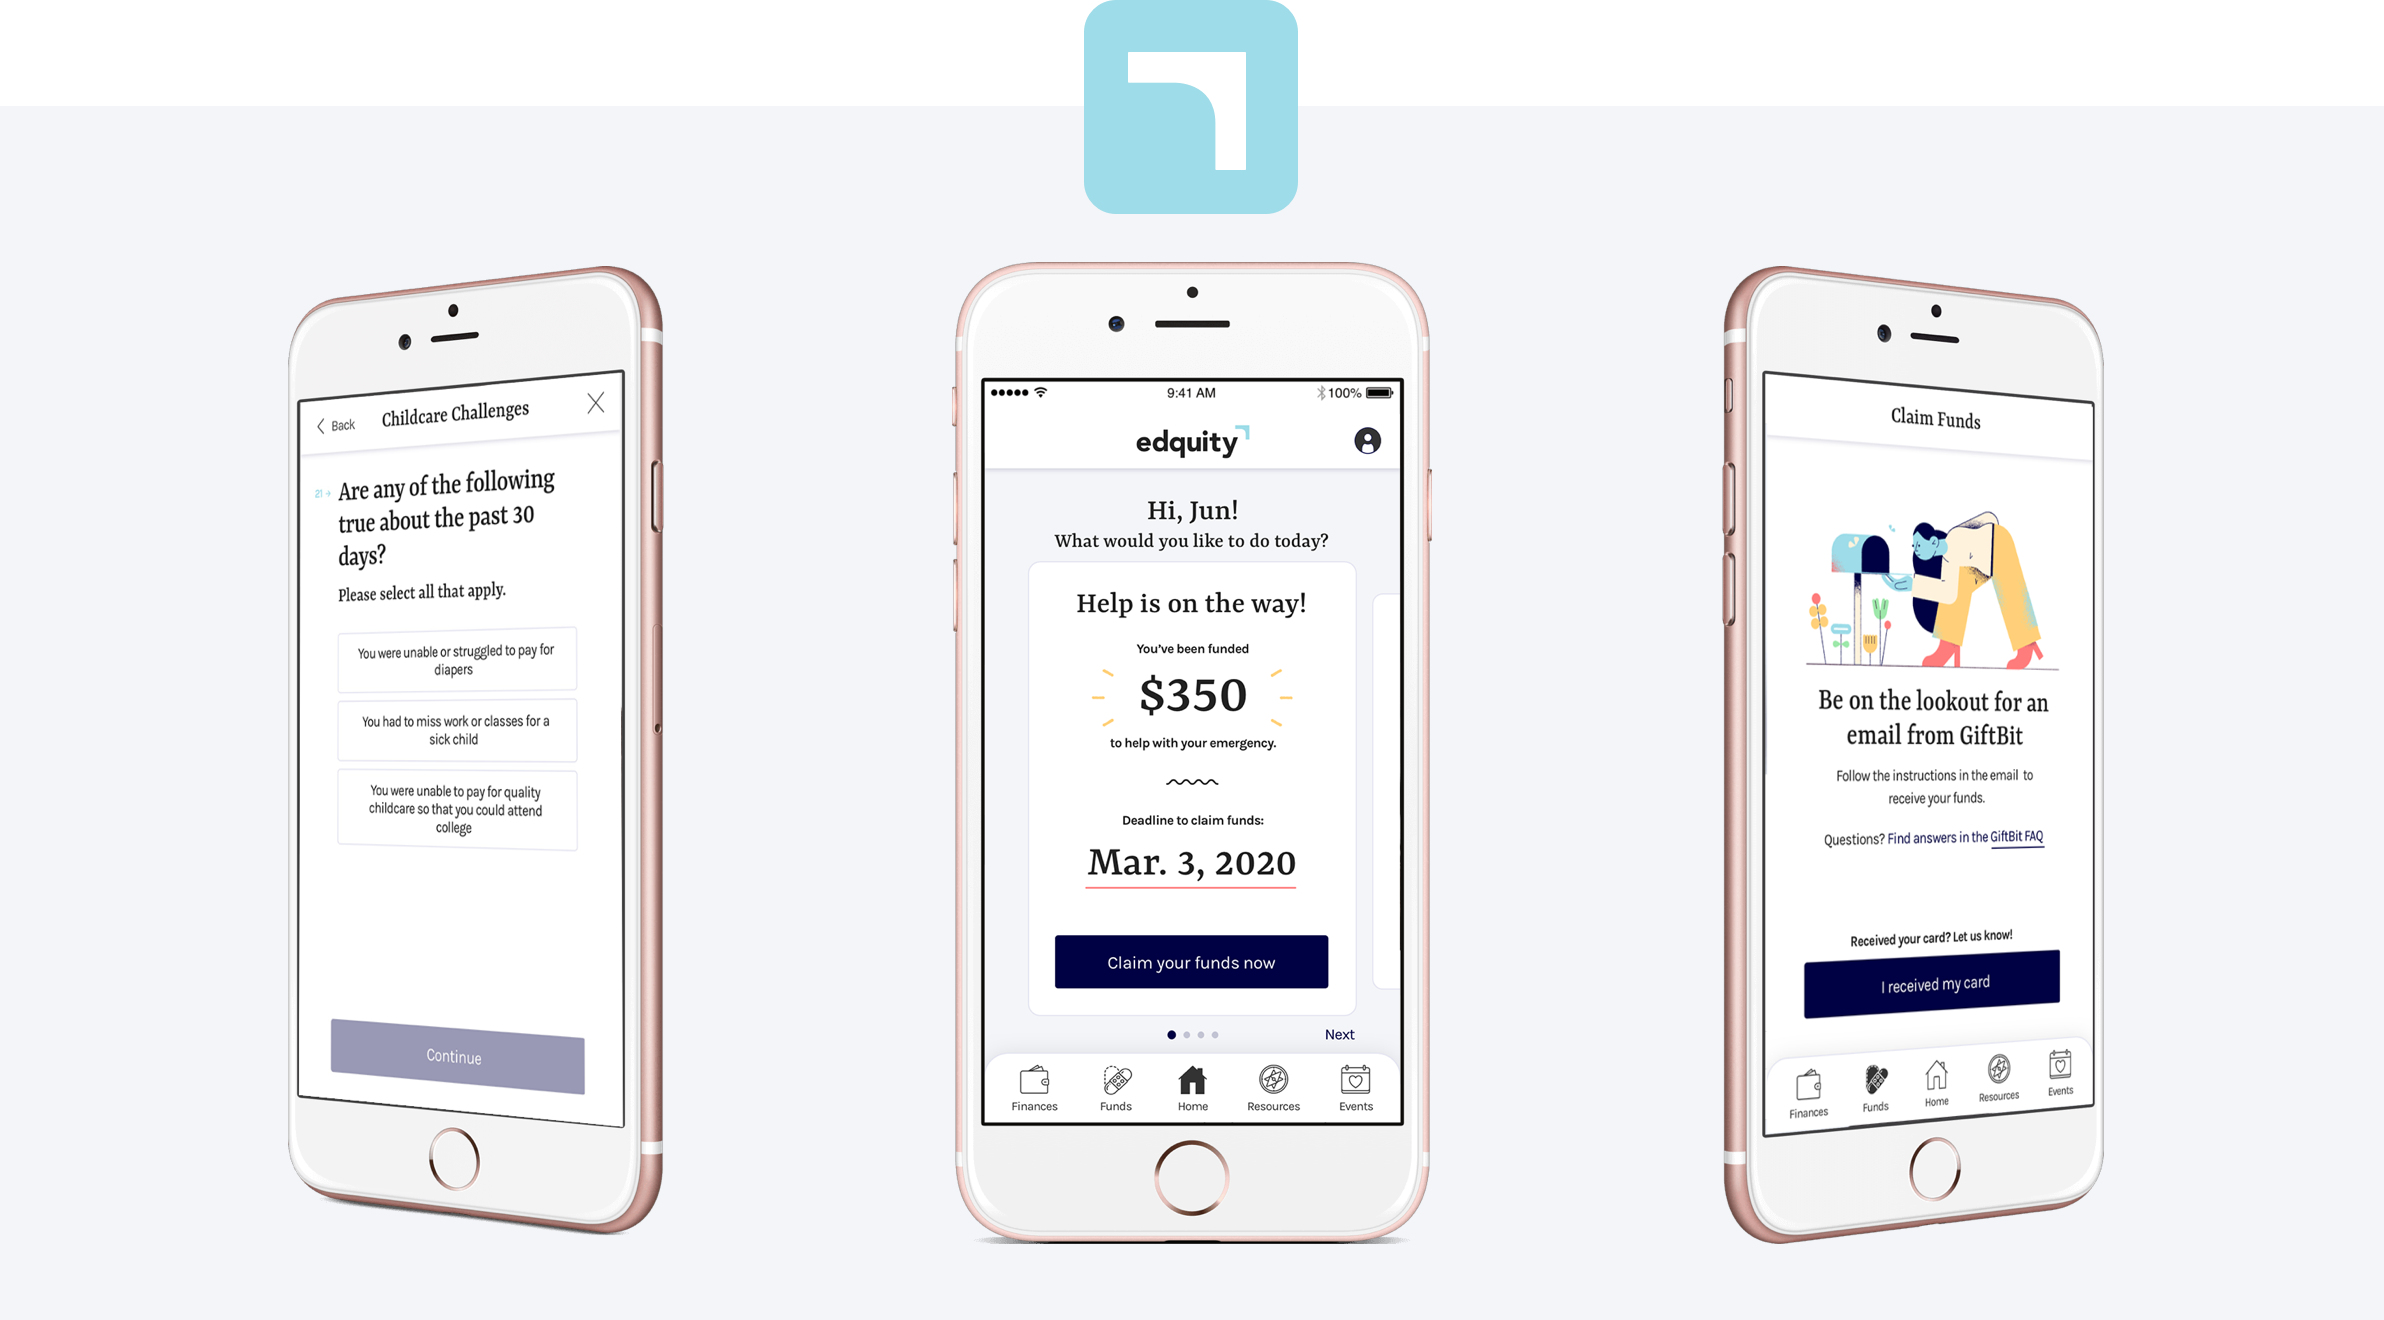 A display of 3 phone mockups showing the Edquity app